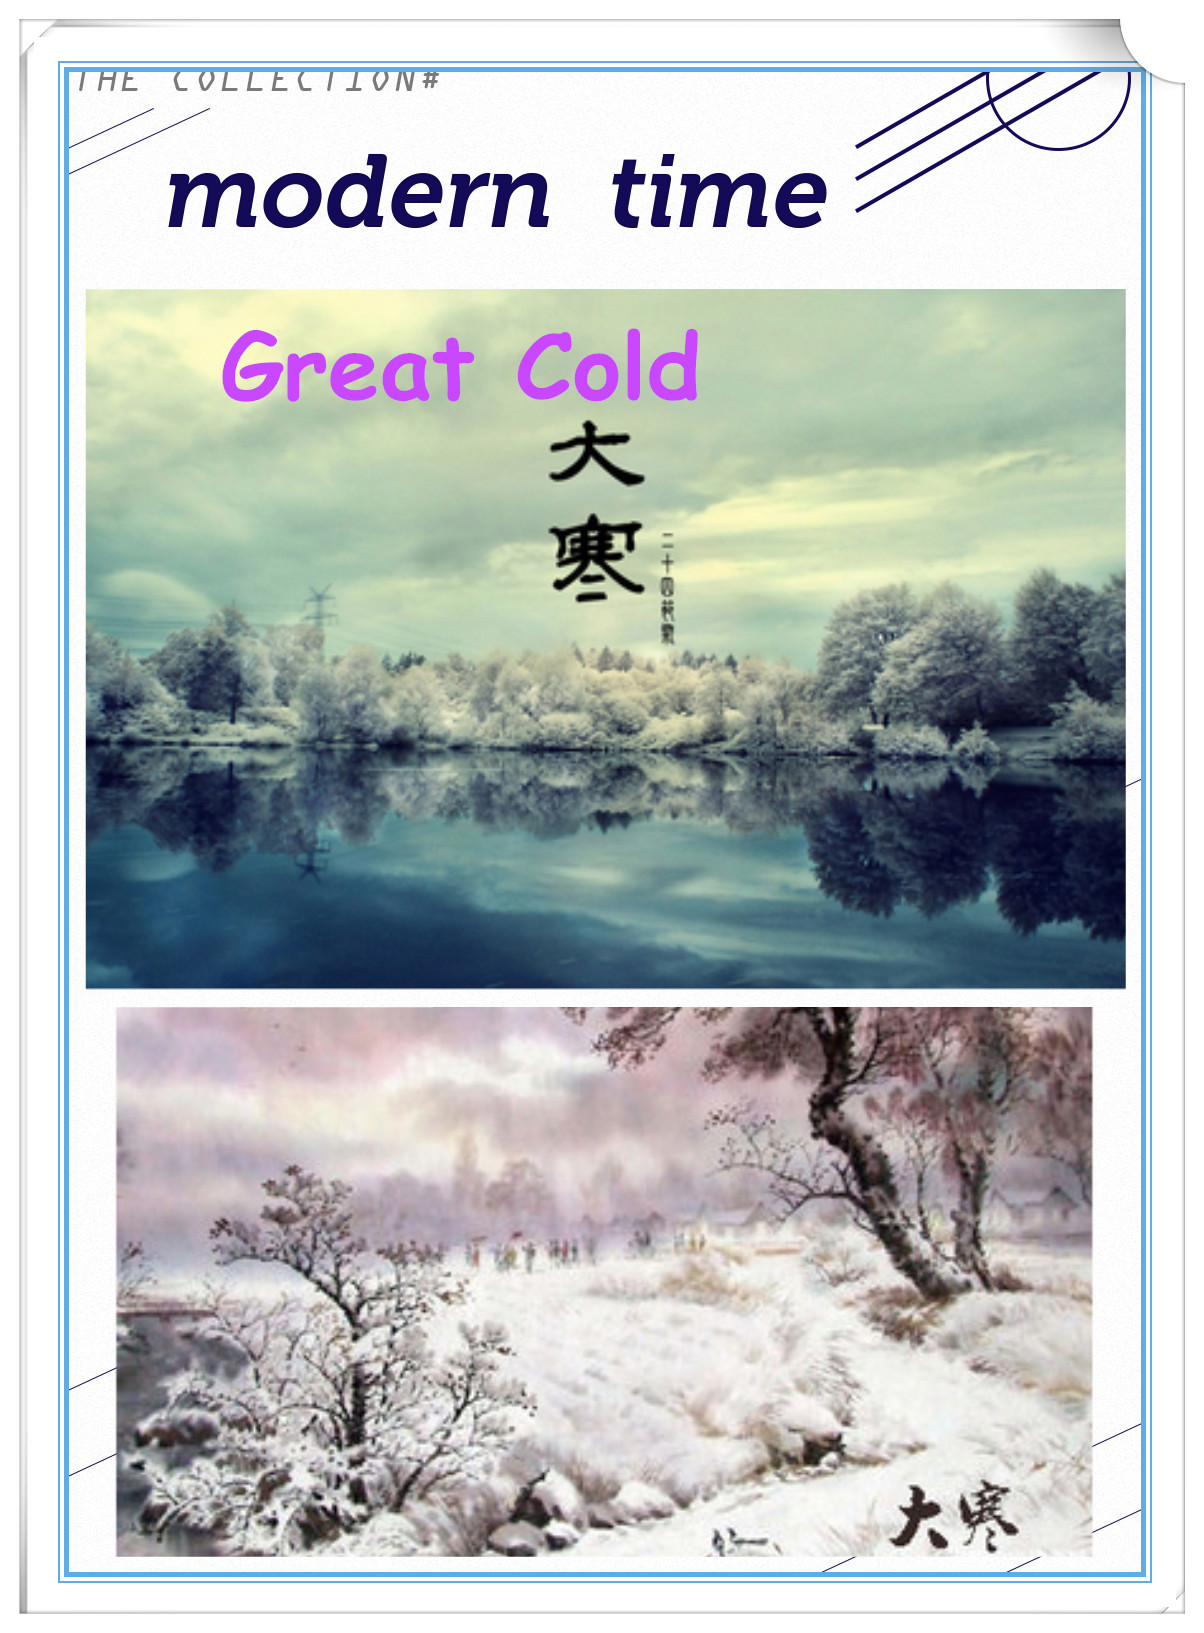 Great cold, the last solar term in China of 2015